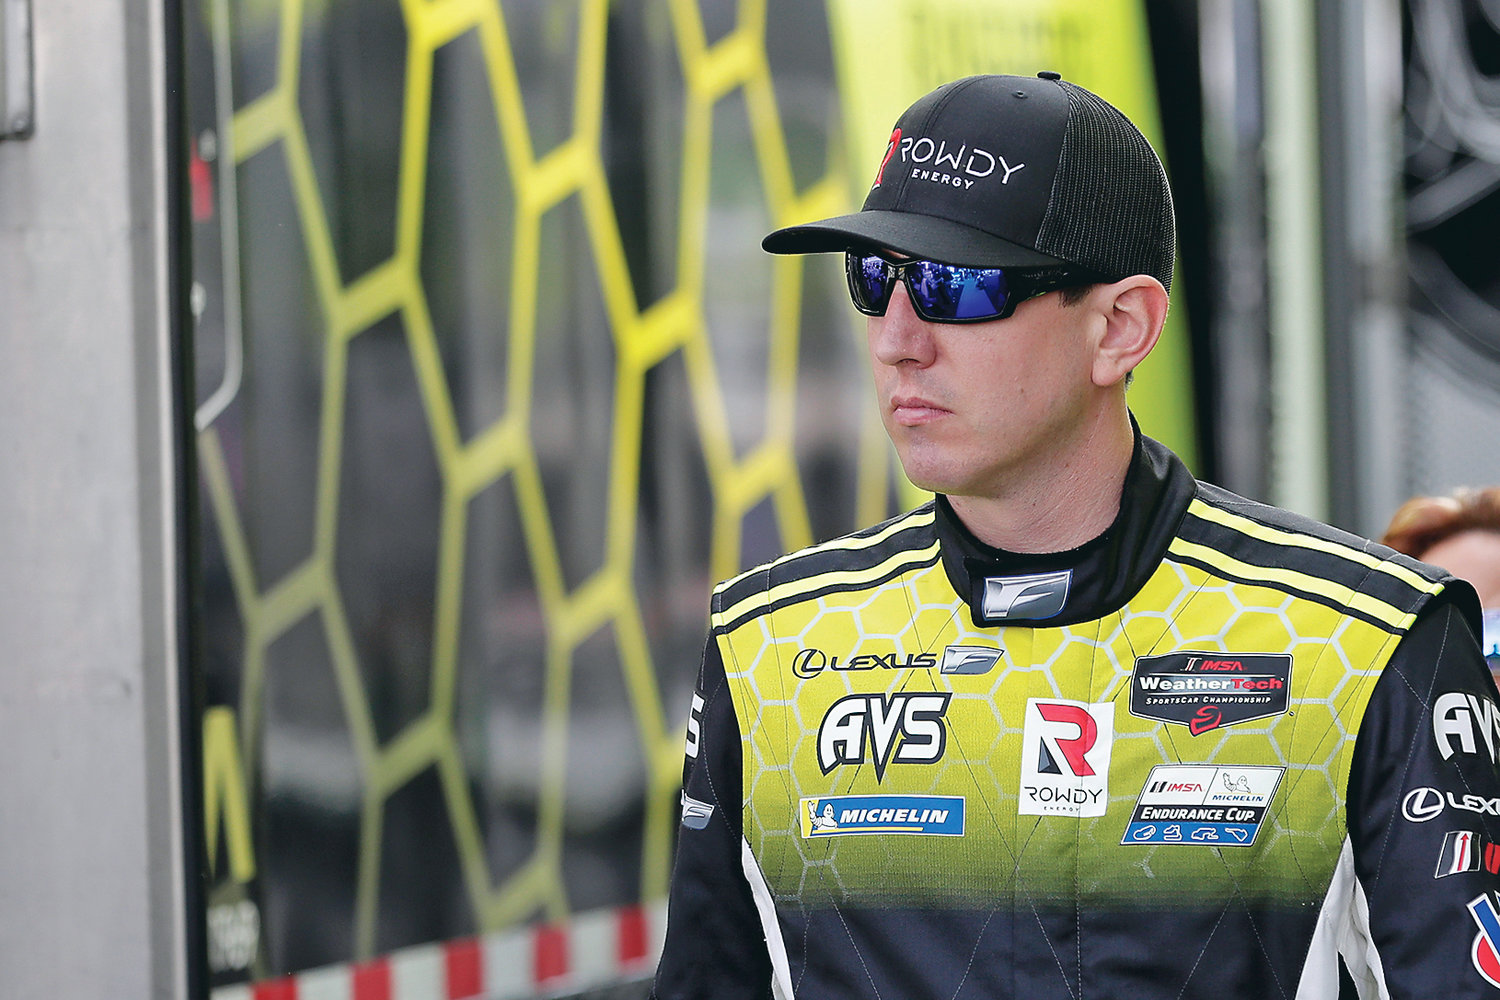 Kyle Busch has 2 NASCAR titles and an eye on at least 5 more – Cleveland Daily Banner